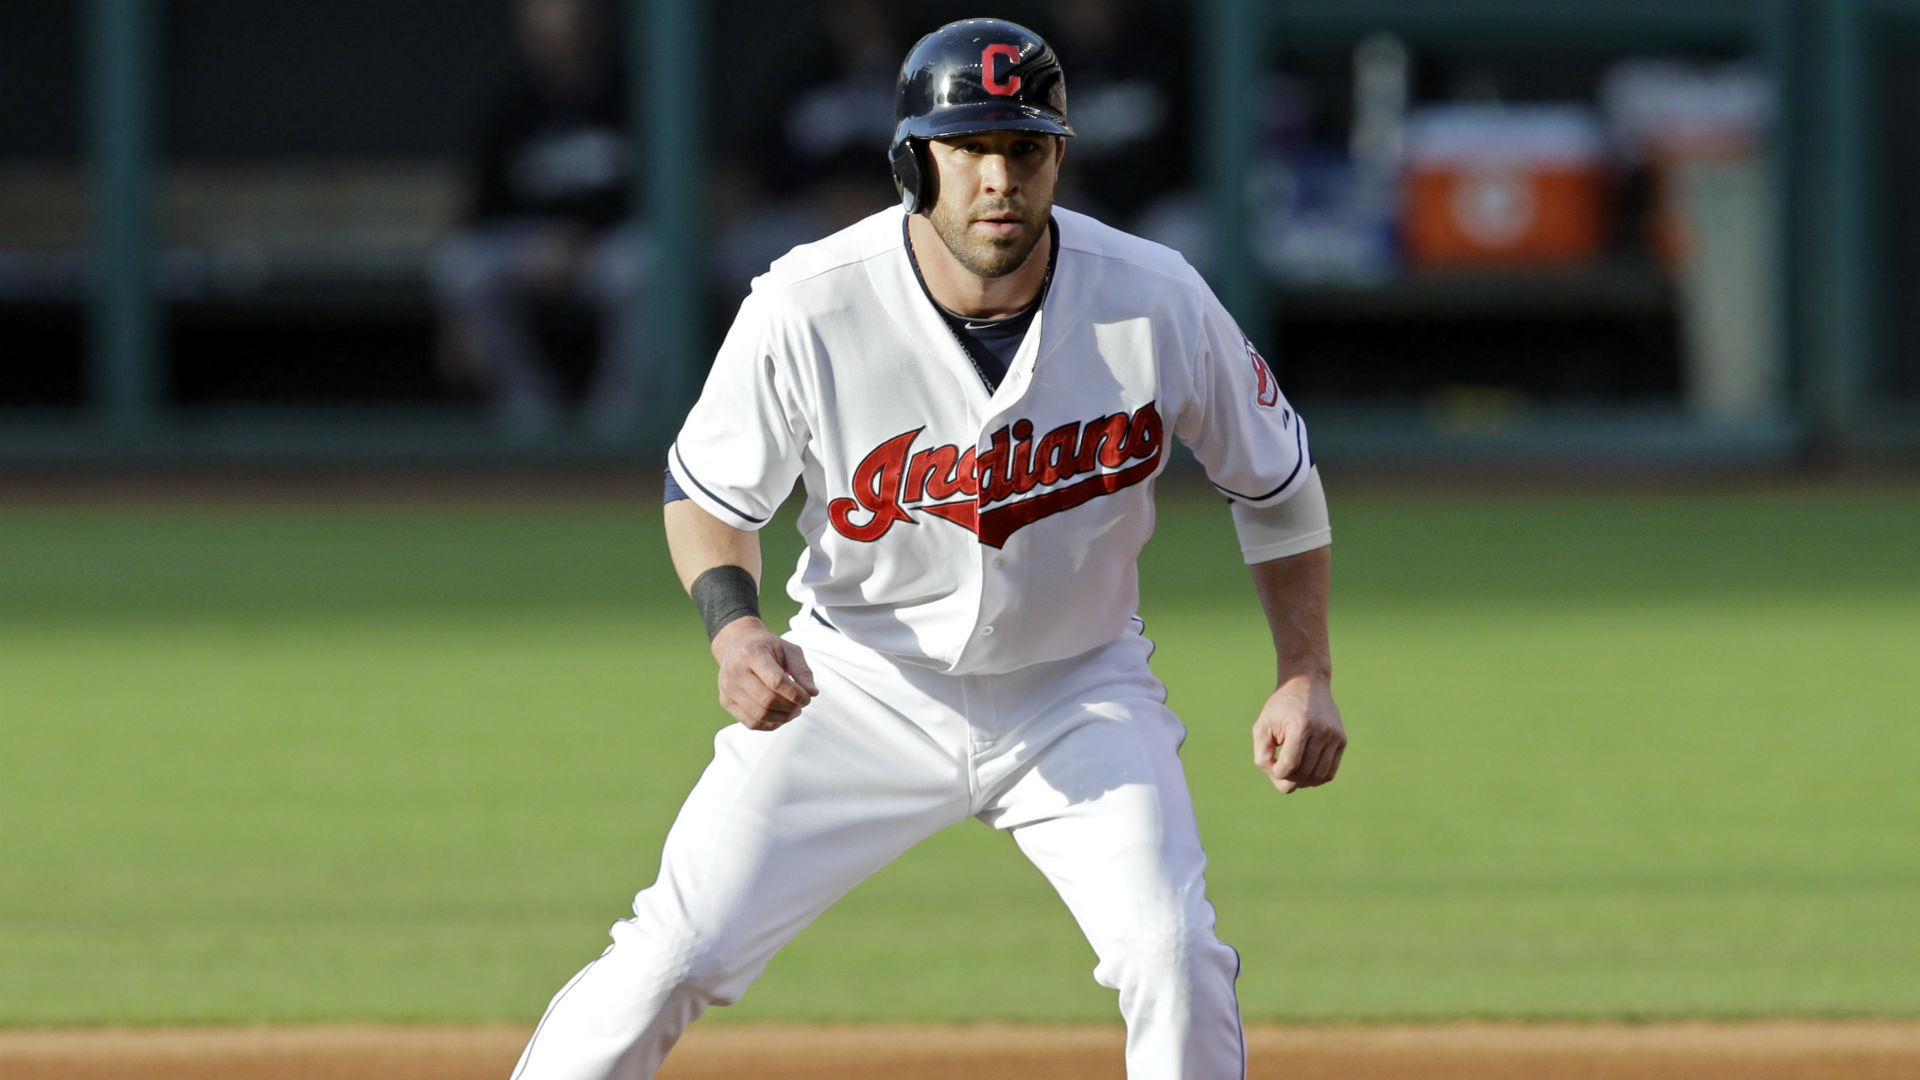 Daily fantasy baseball lineup: Today's buy/sell picks for DraftKings leagues